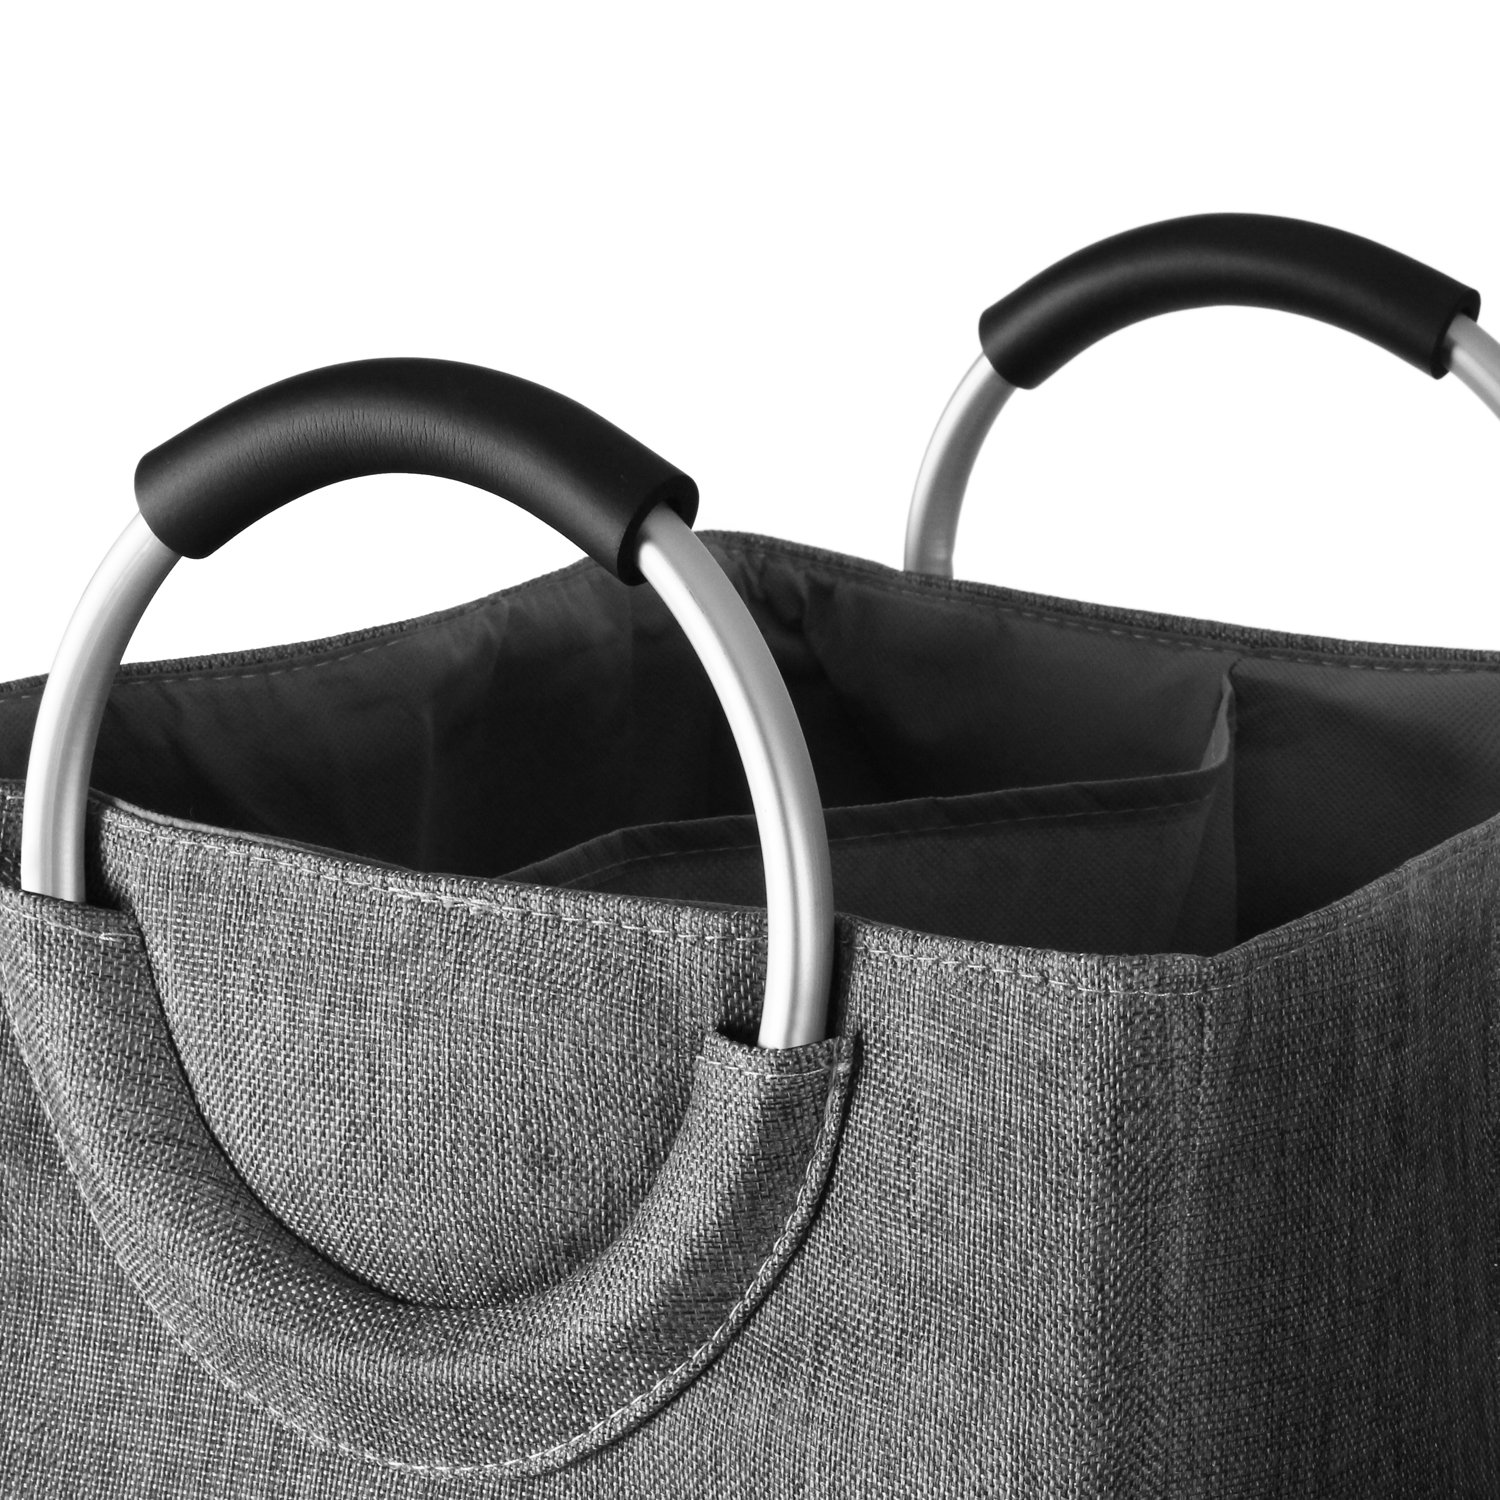 Clothes Hamper Round Handles Convenient Carrying Foldable,Easy to Clean IMPFUNICAL Double Laundry Hamper